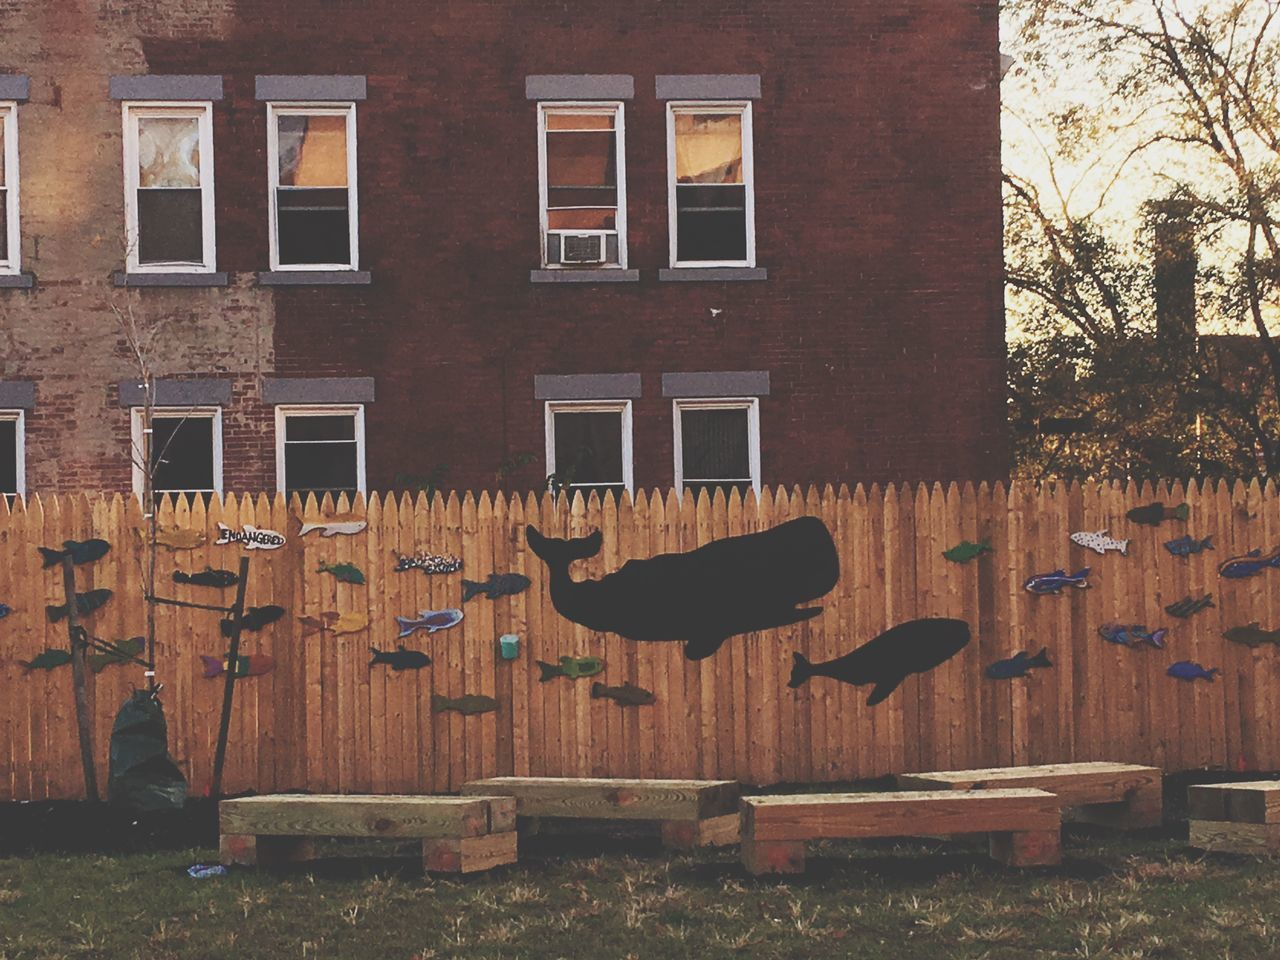 Pittsburgh, PA Built Structure No People Architecture Building Exterior Outdoors Clothesline Tree Day Pittsburgh Pennsylvania Whale Fish Fence Decoration Windows Street Urban Community Community Spirit Togetherness Neighborhood